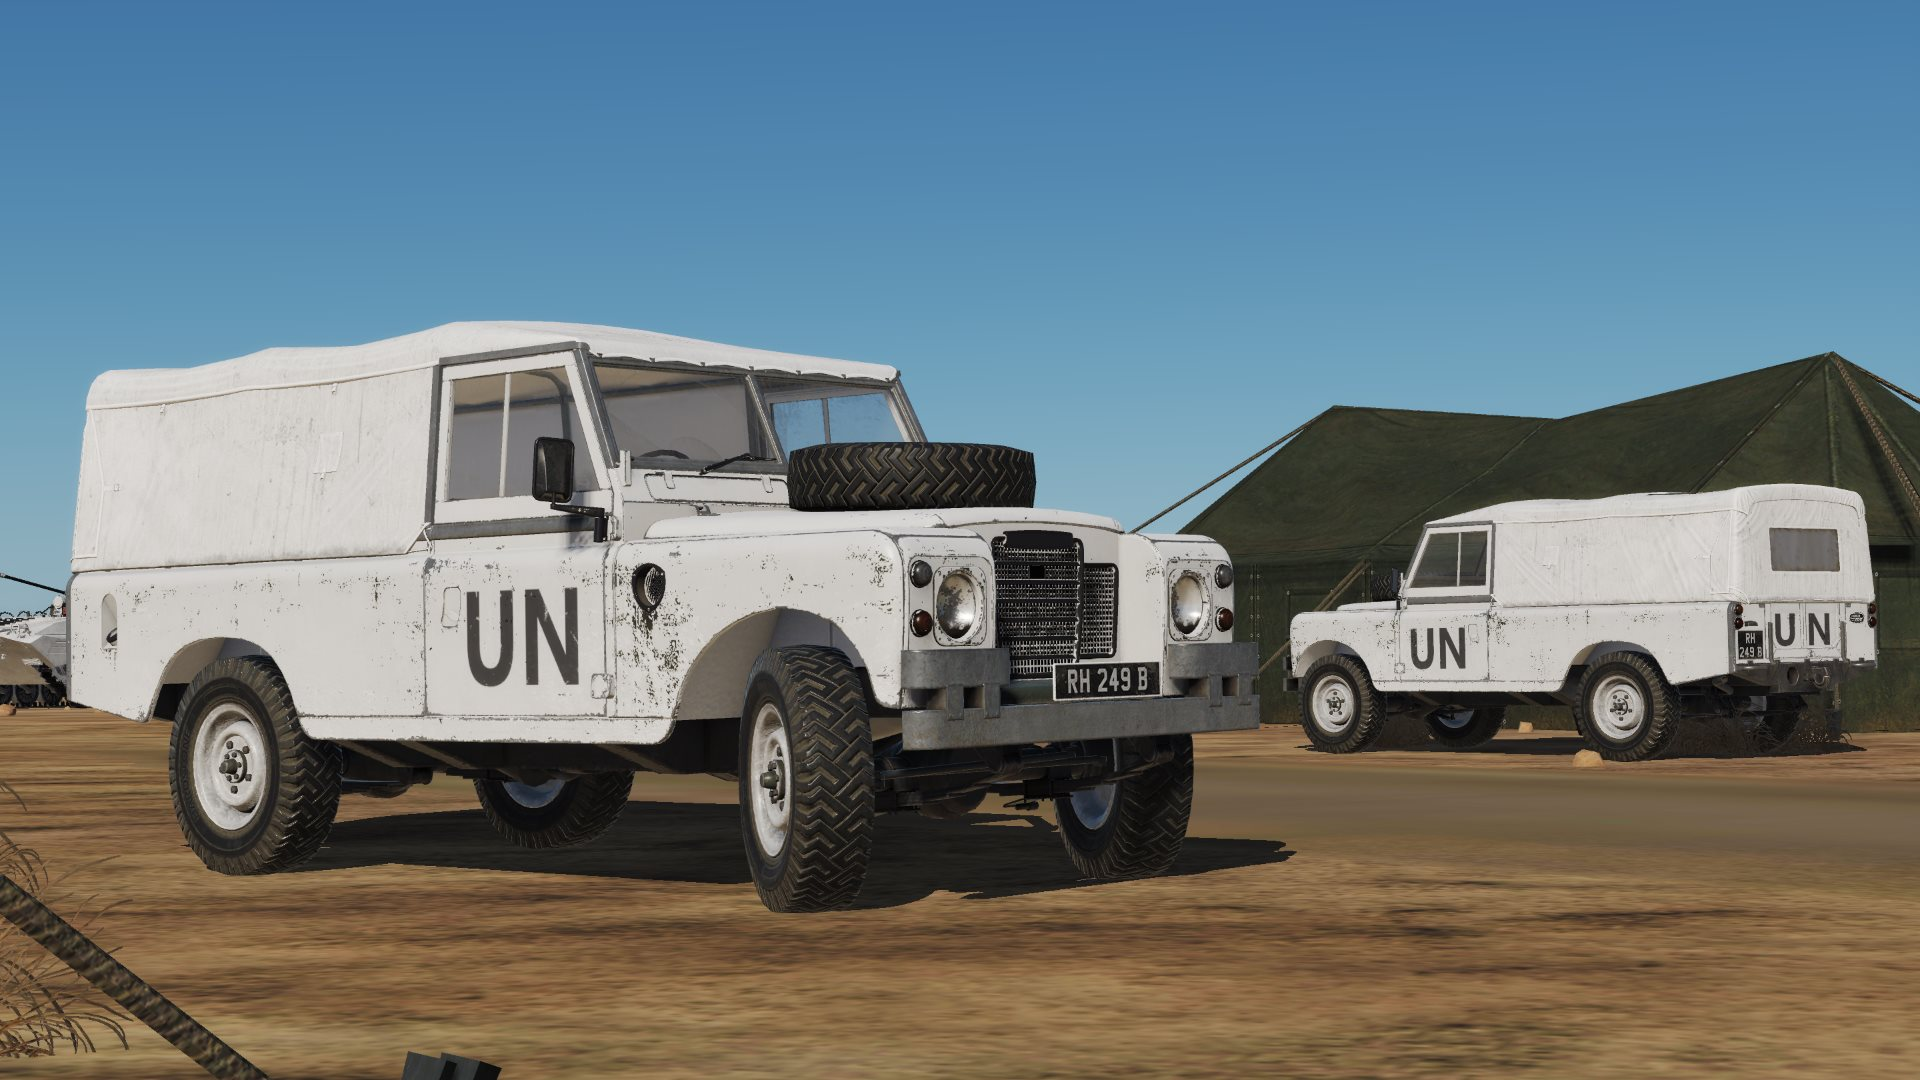 United Nations Land Rover Livery